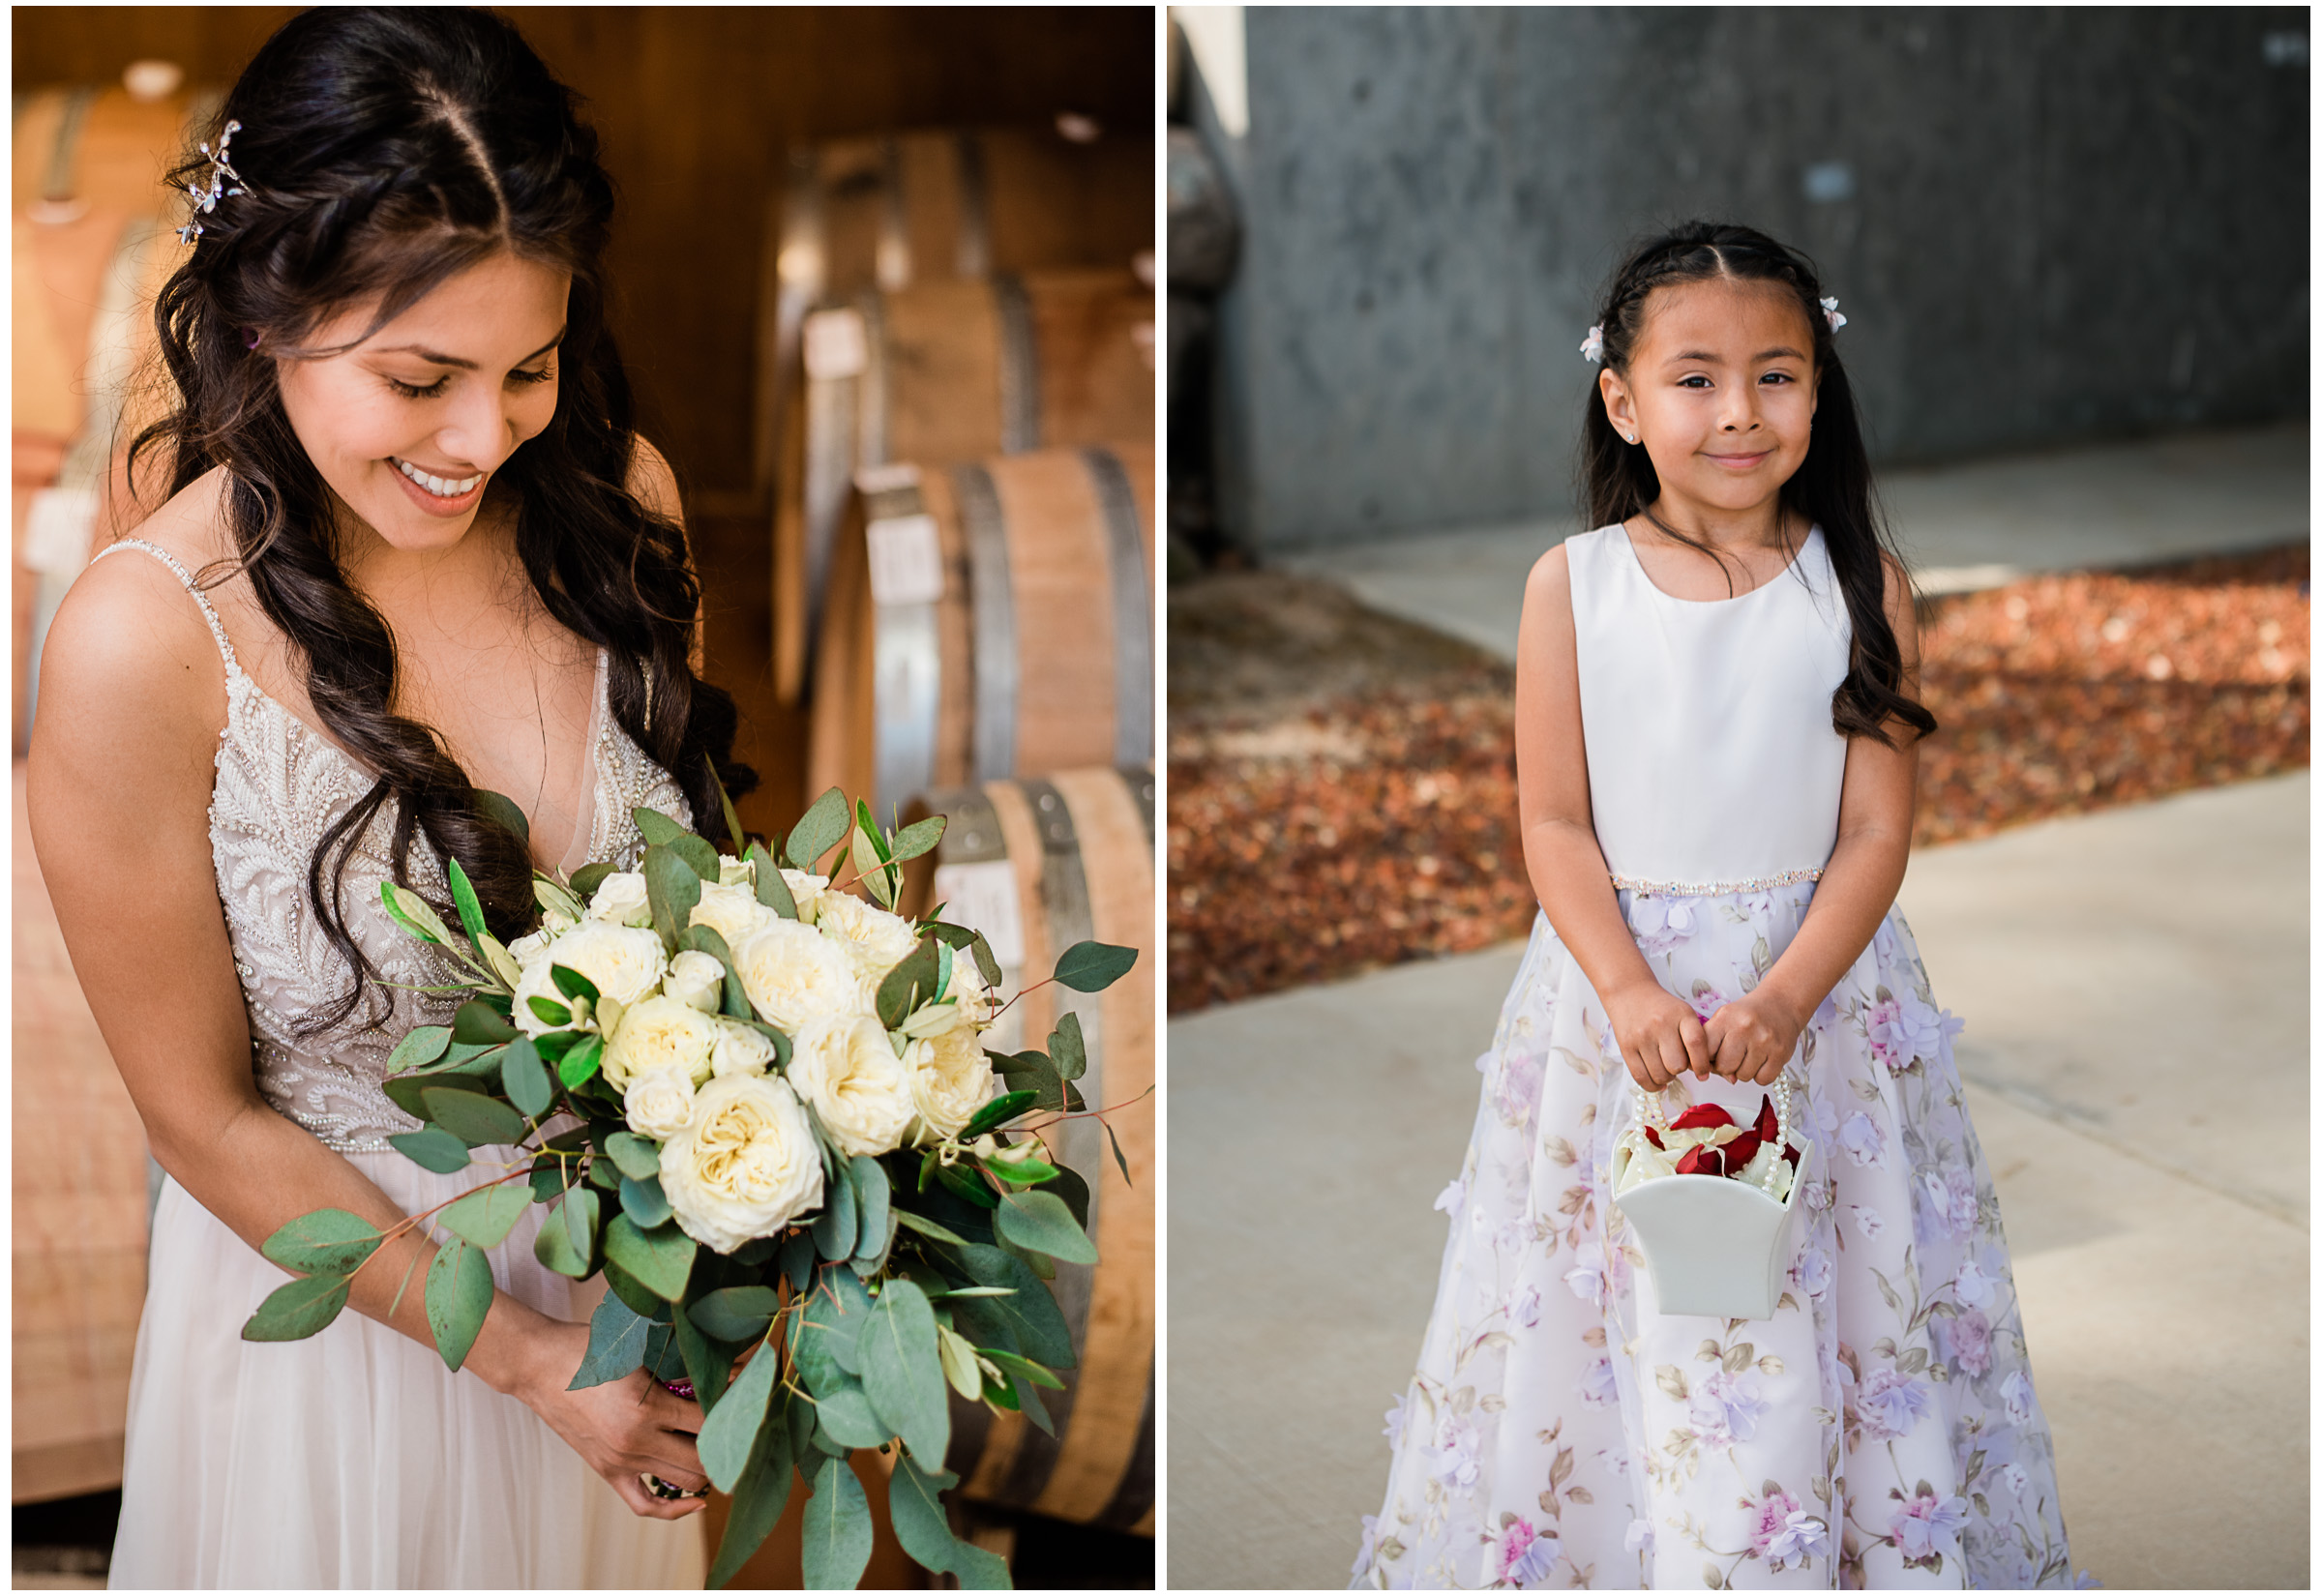 Lincoln Wedding - Sacramento Photographer - Rock Hill Winery - Justin Wilcox Photography - 5.jpg